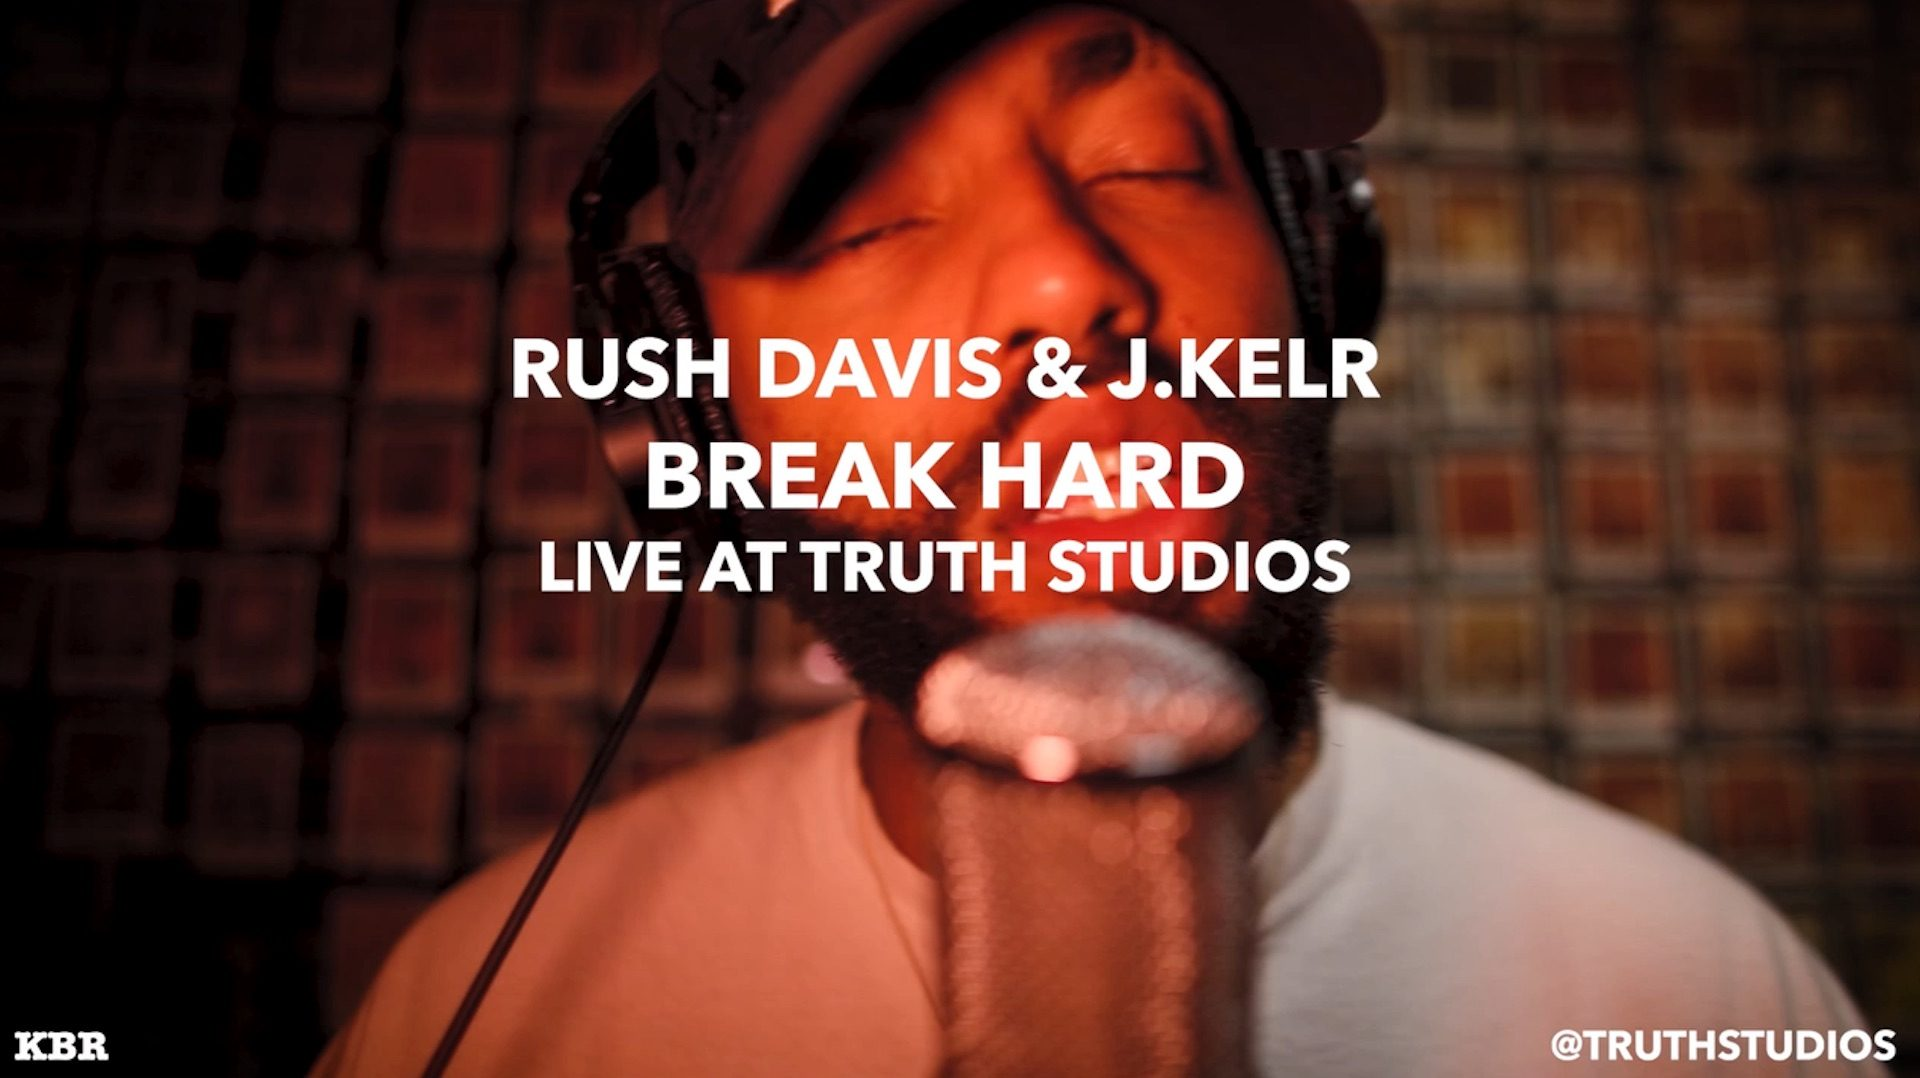 Rush Davis & J.Kelr - Break Hard (Live at Truth Studios)